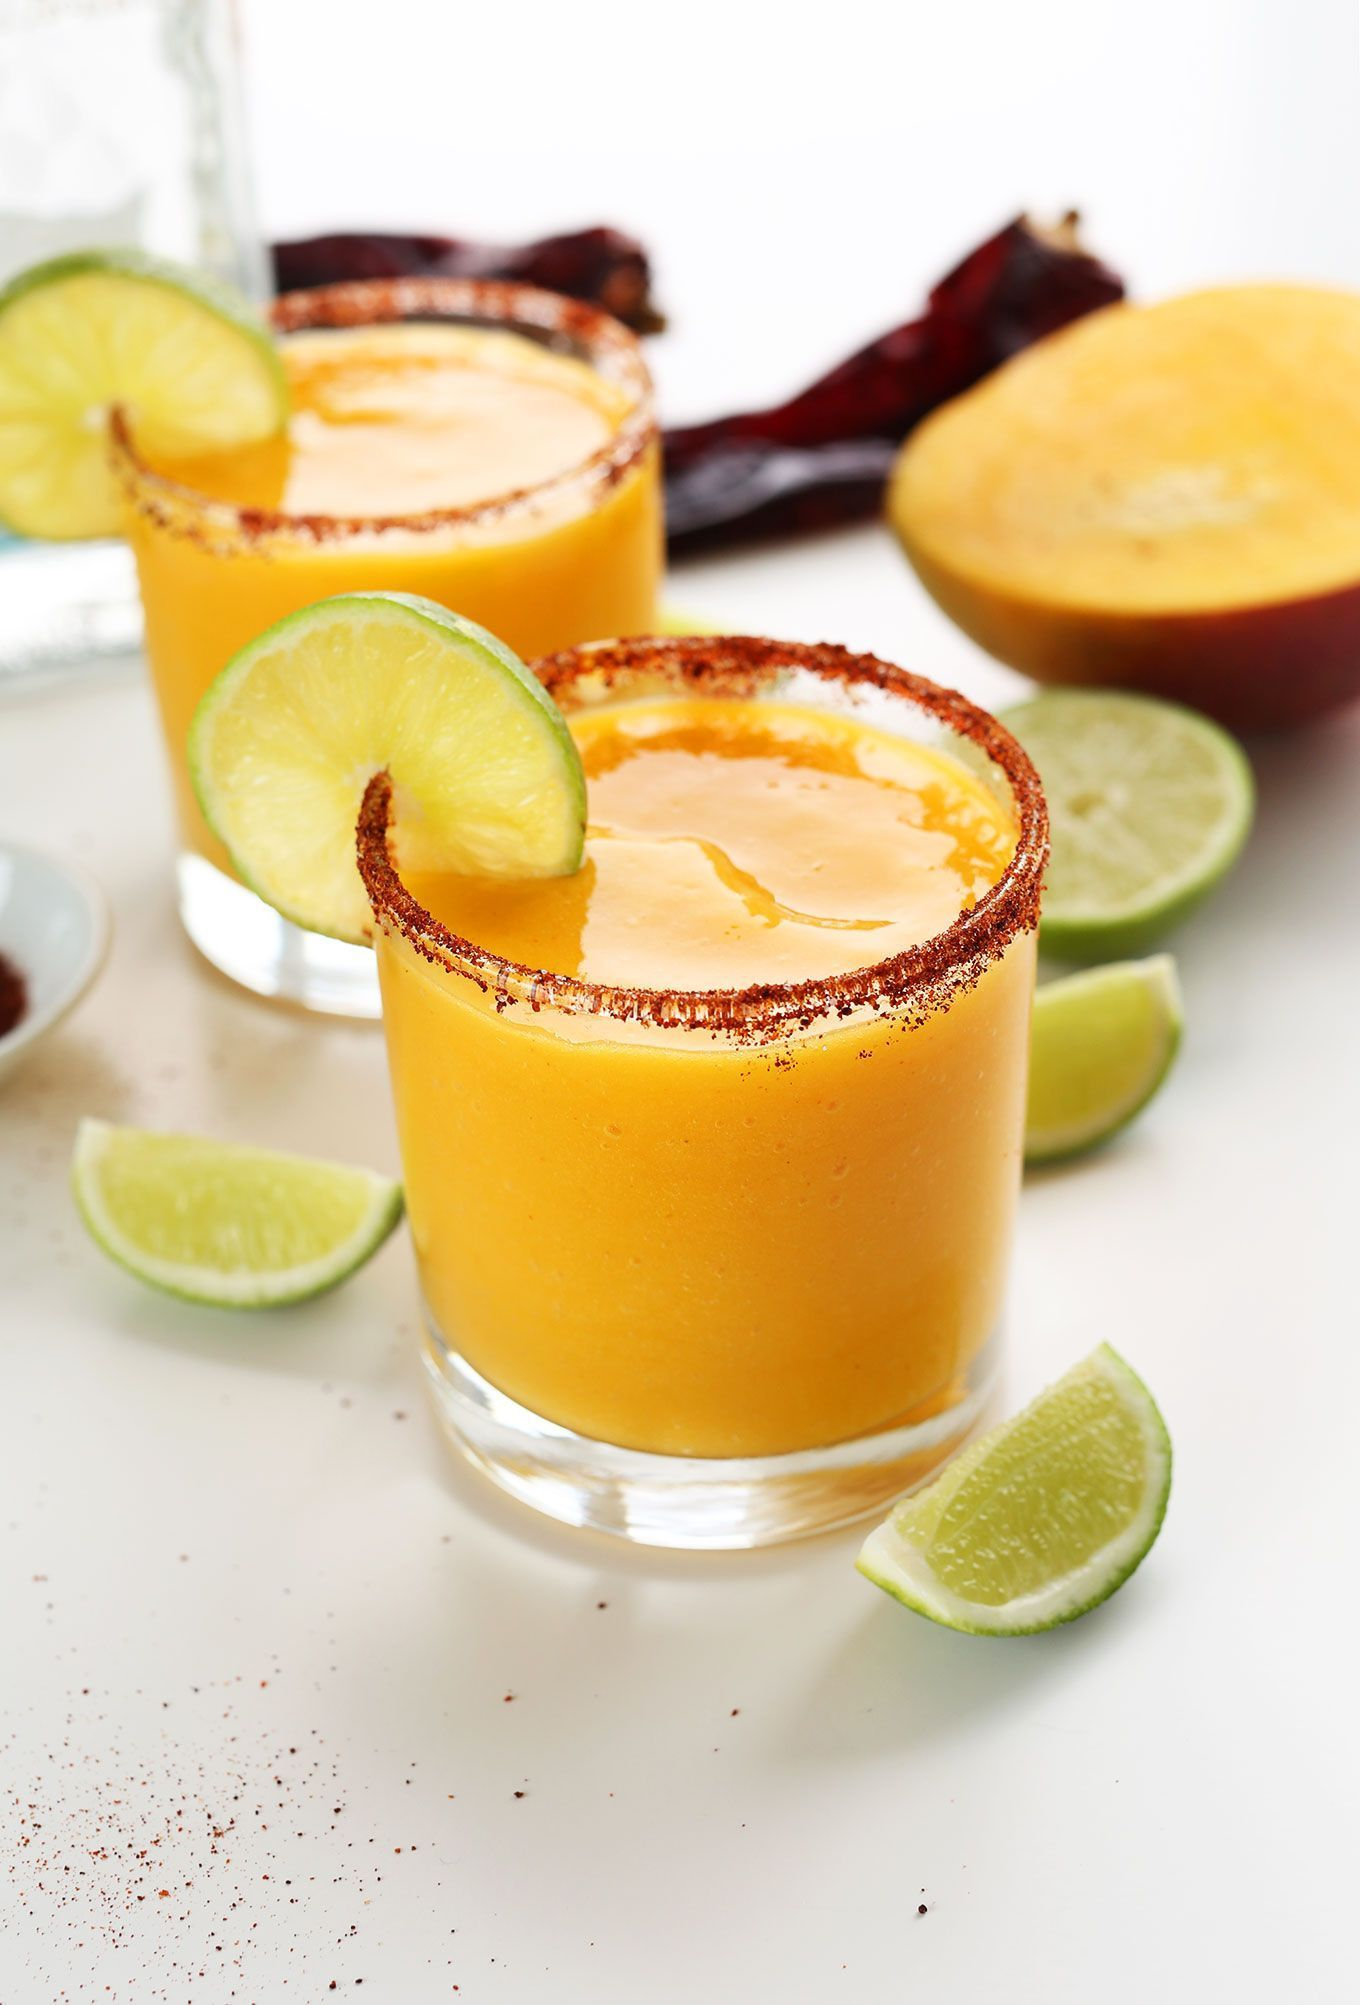 Chili Lime Mango Margaritas #limemargarita EASY Mango Chili Lime Margaritas! Perfectly tart, sweet and spicy! #vegan #limemargarita Chili Lime Mango Margaritas #limemargarita EASY Mango Chili Lime Margaritas! Perfectly tart, sweet and spicy! #vegan #limemargarita